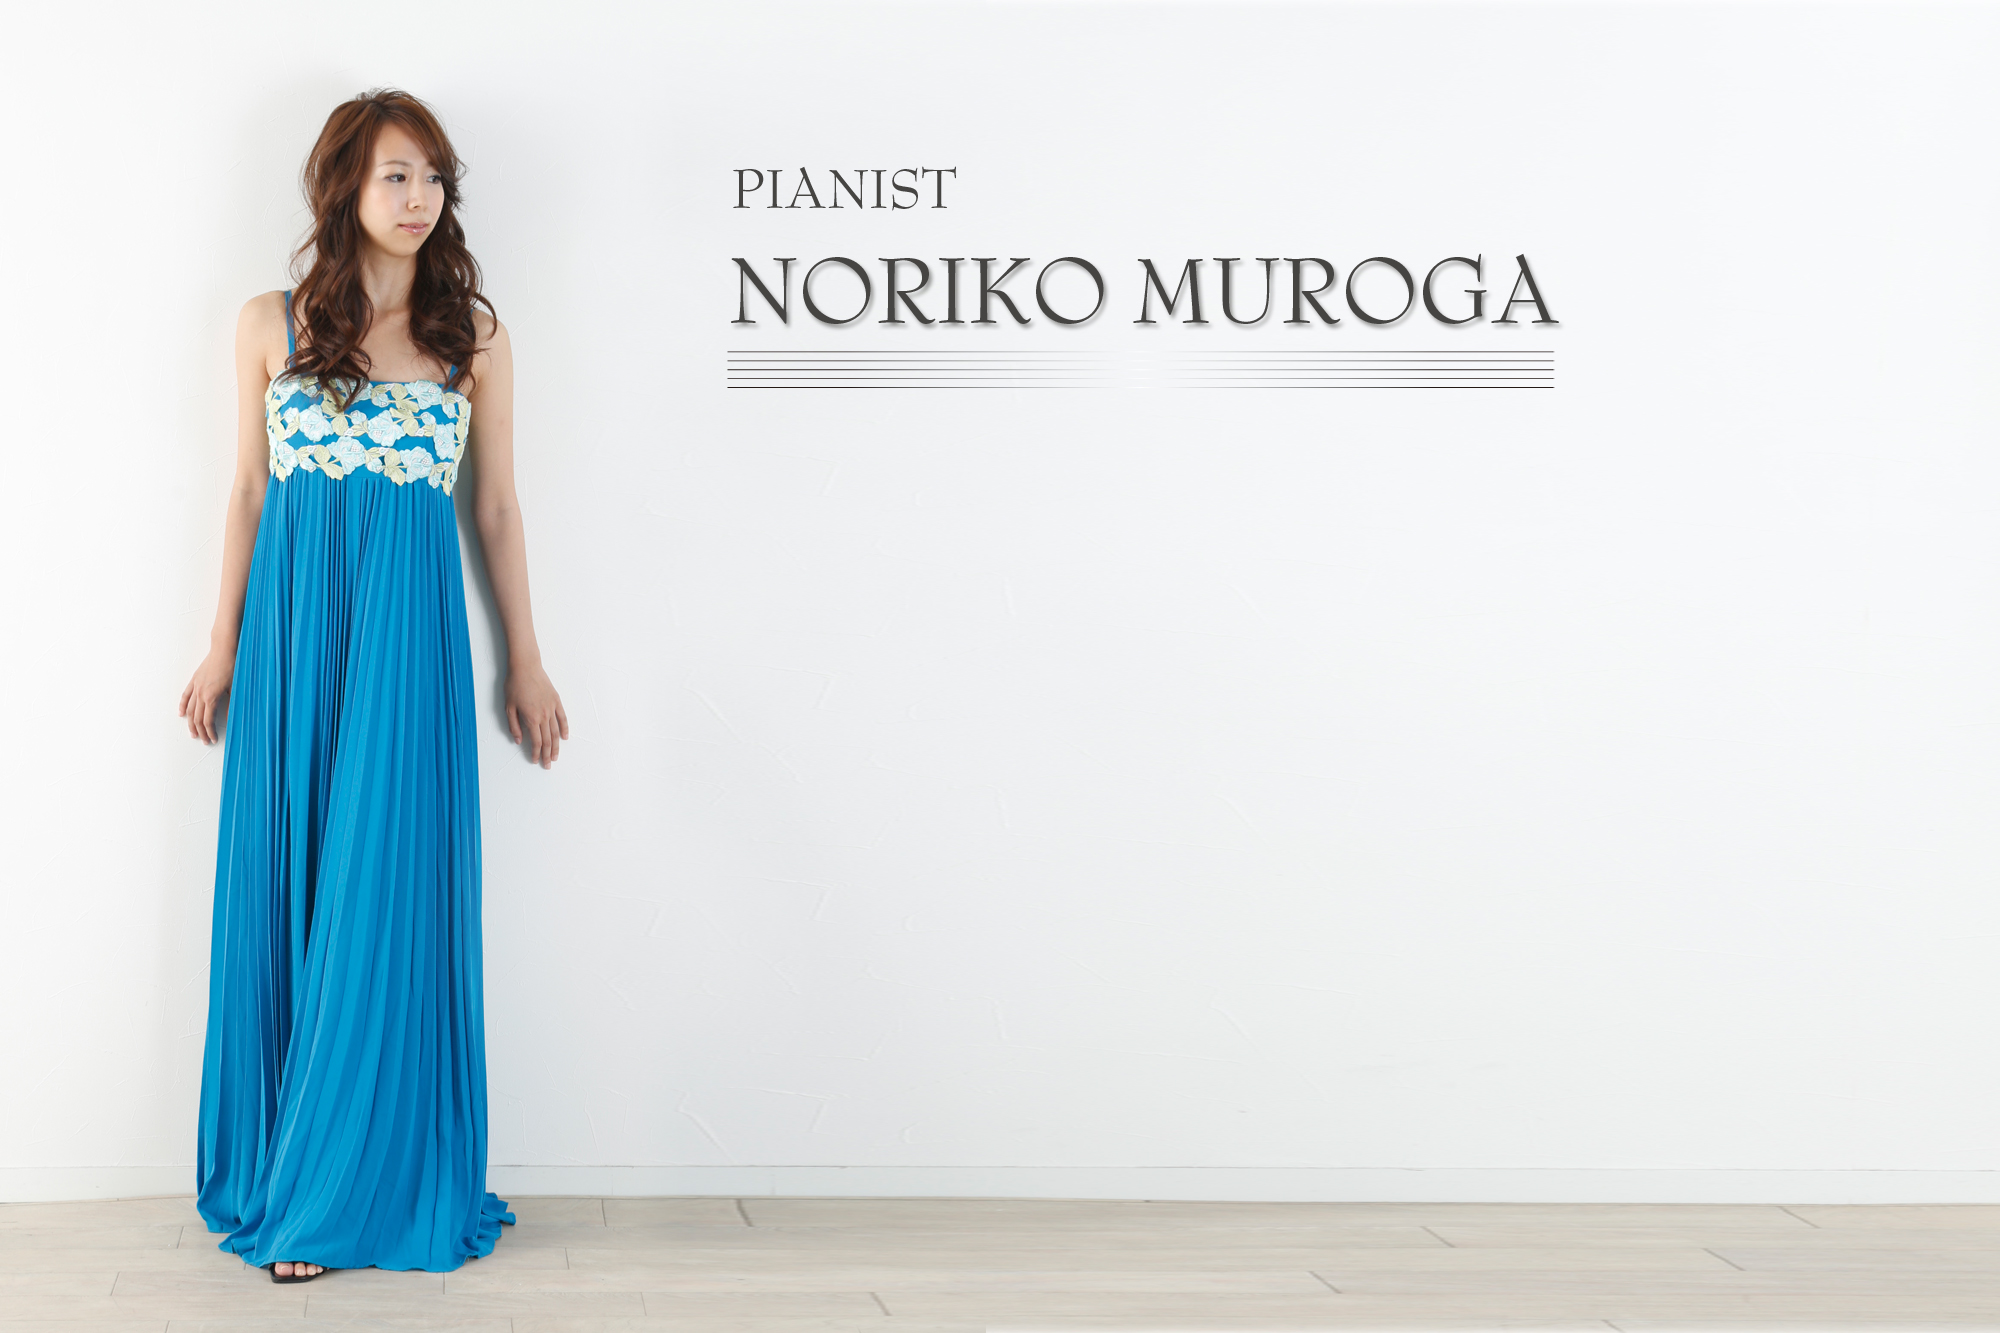 norikomuroga_official